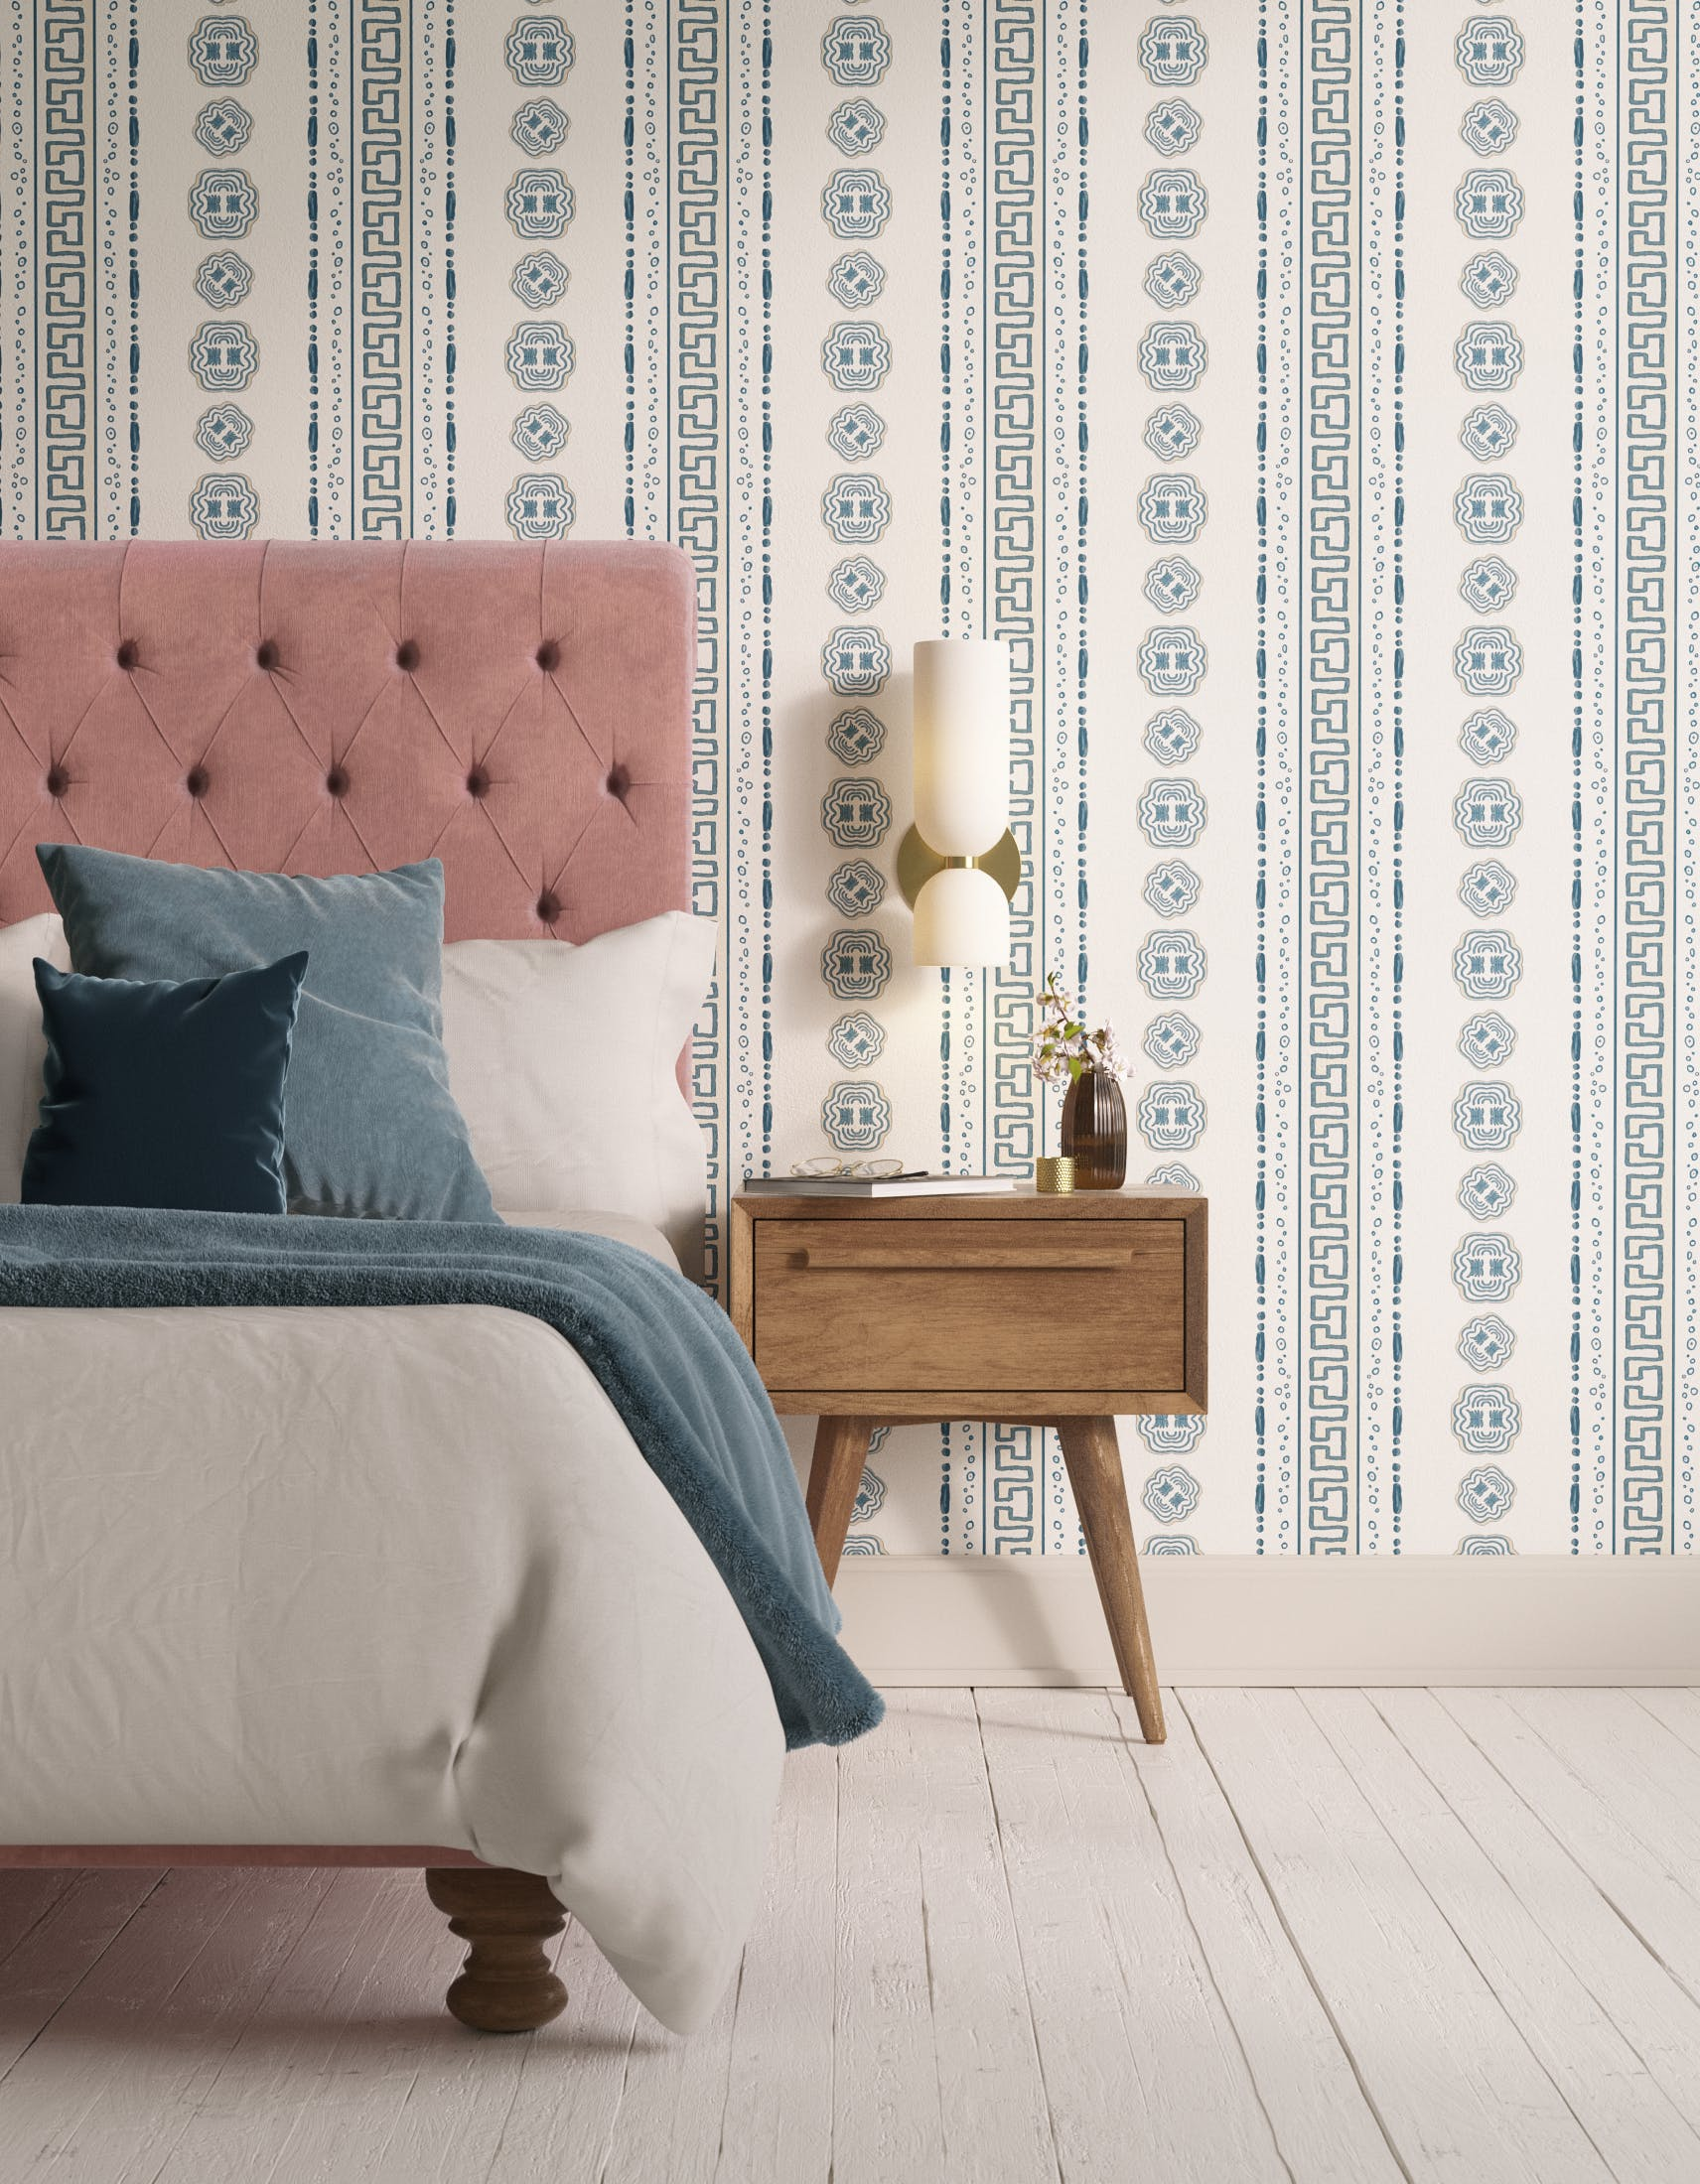 Bedroom decorated with Lick x Lottie McDowell Hestia 01 greek patterened wallpaper